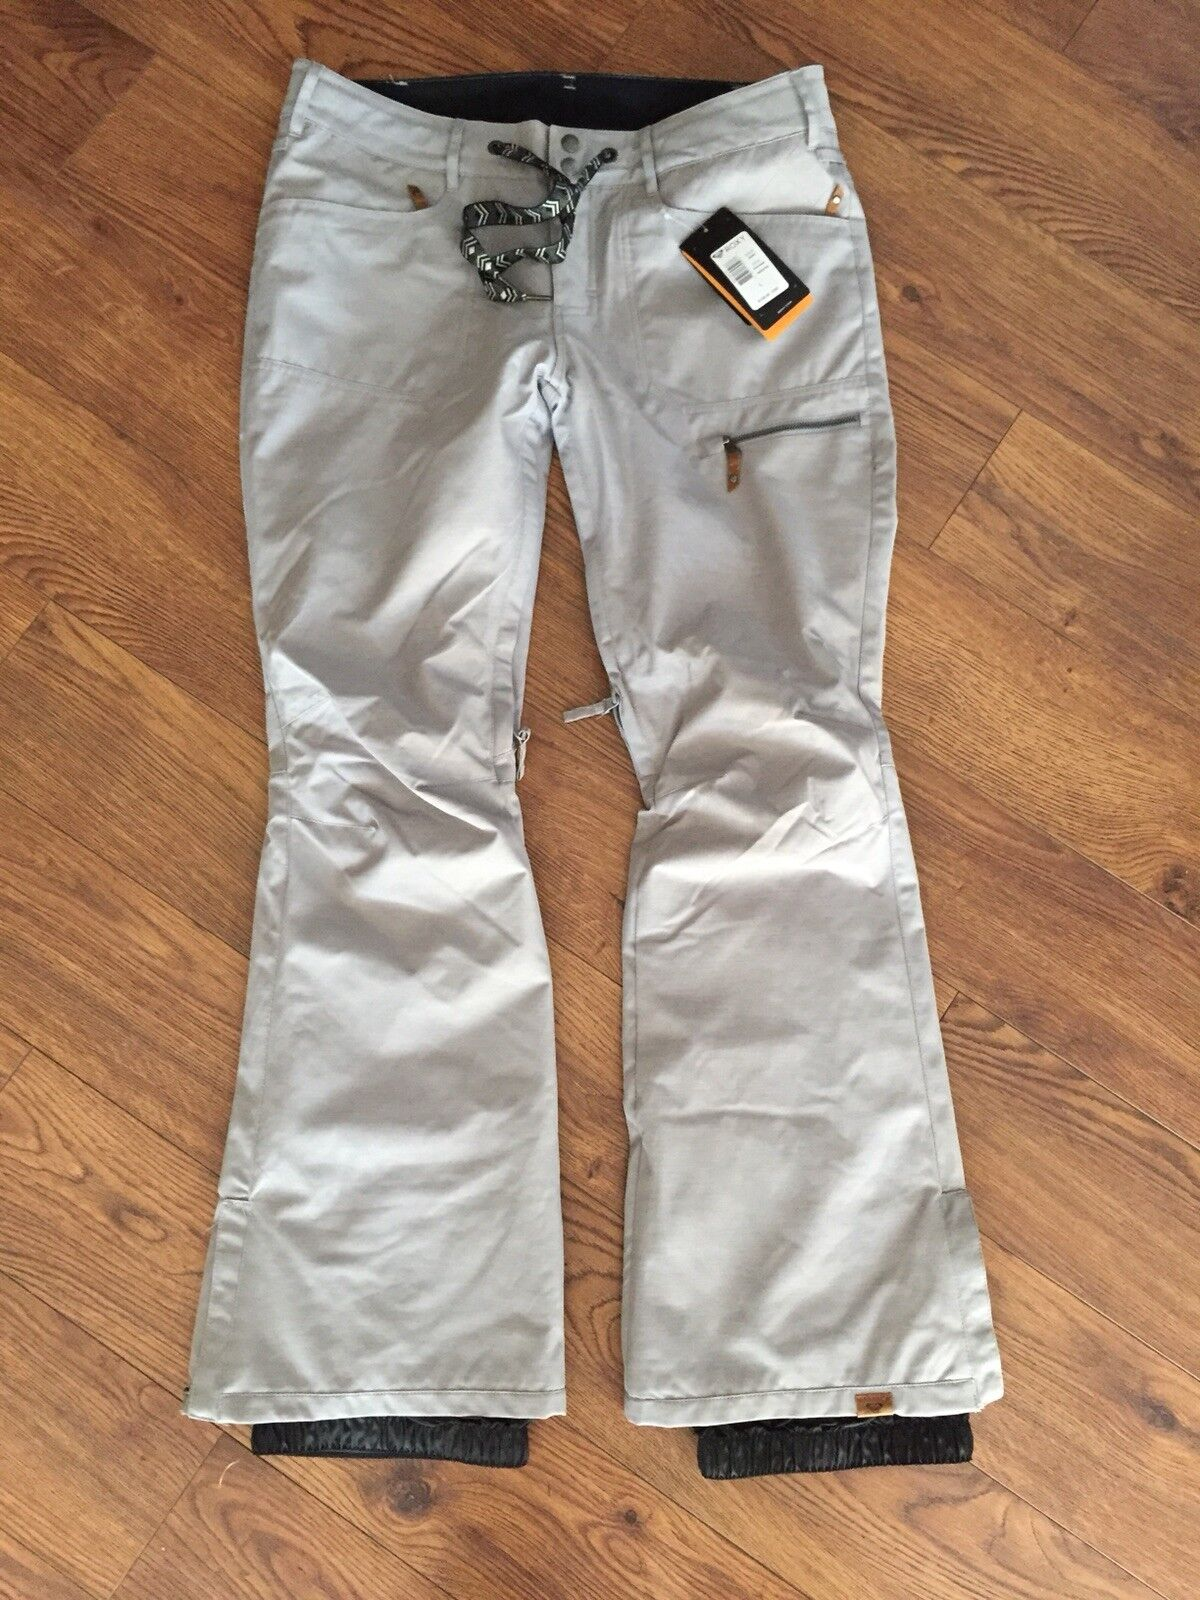 Roxy Insulated Snow Pants Snowboard Ski L